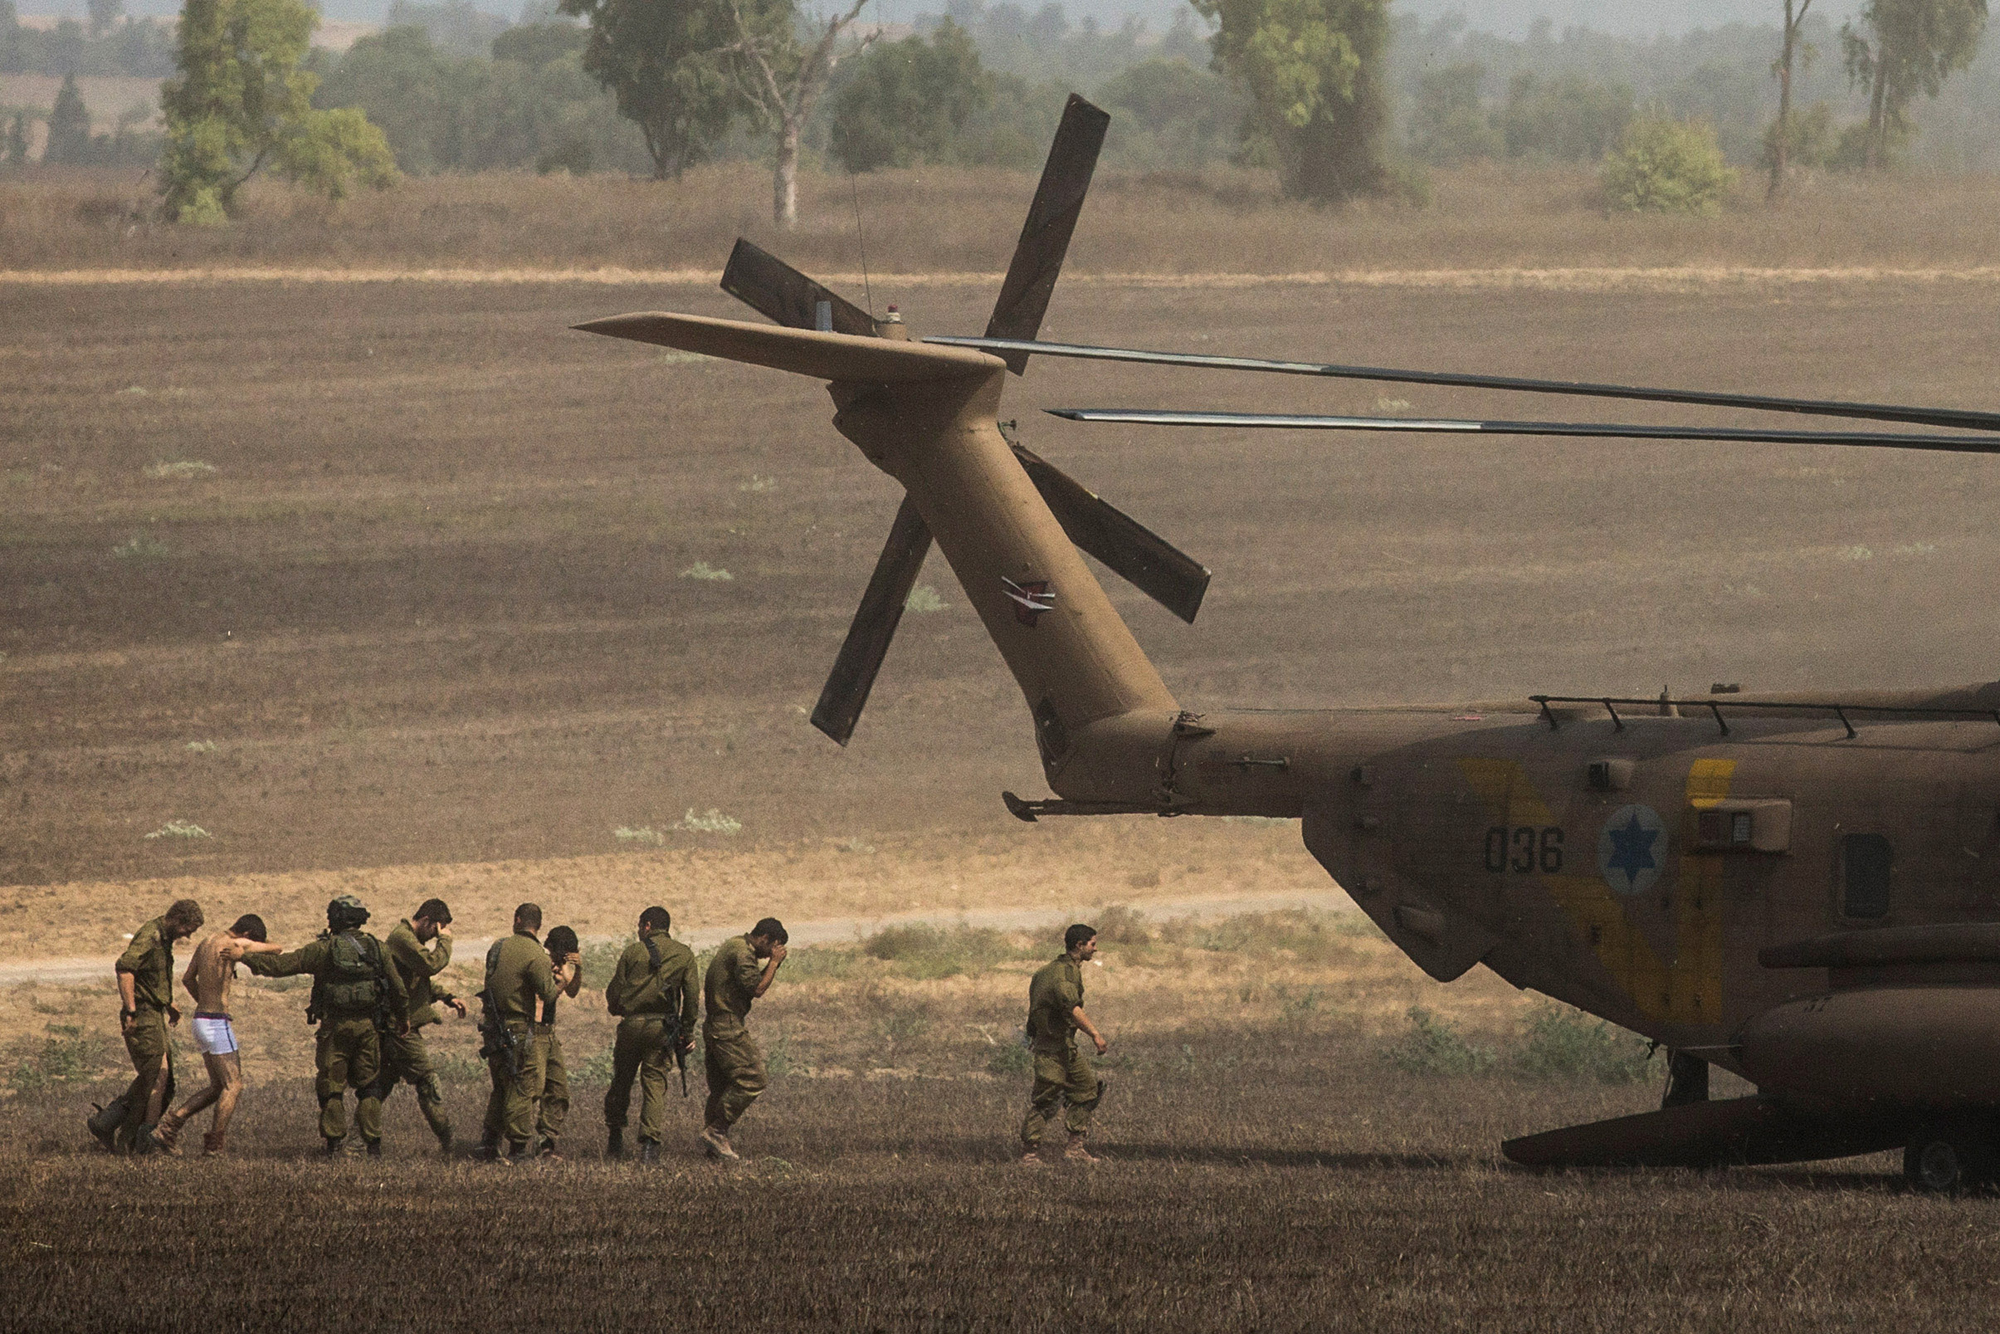 Wounded Israeli soldiers are brought to a helicopter on July 23, 2014 near Kafar Aza, Israel.